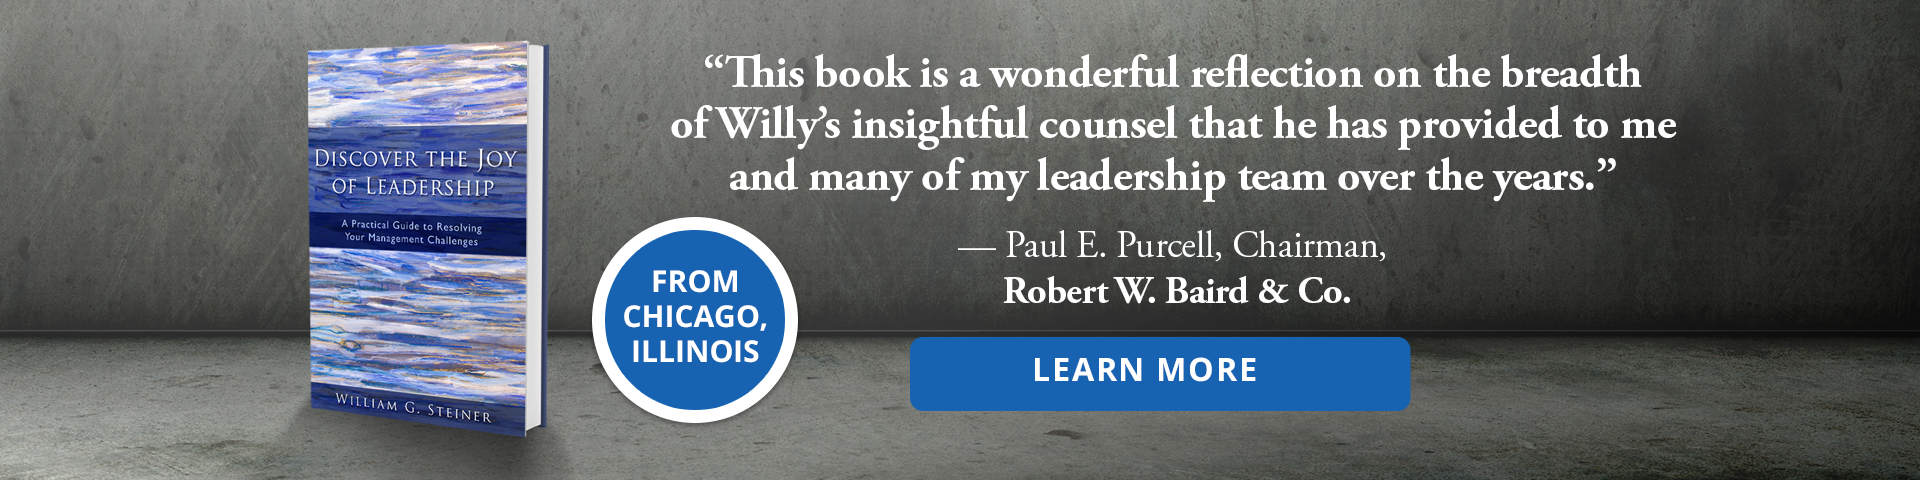 Discover the Joy of Leadership: A Practical Guide to Resolving Your Management Challenges by Willy Steiner